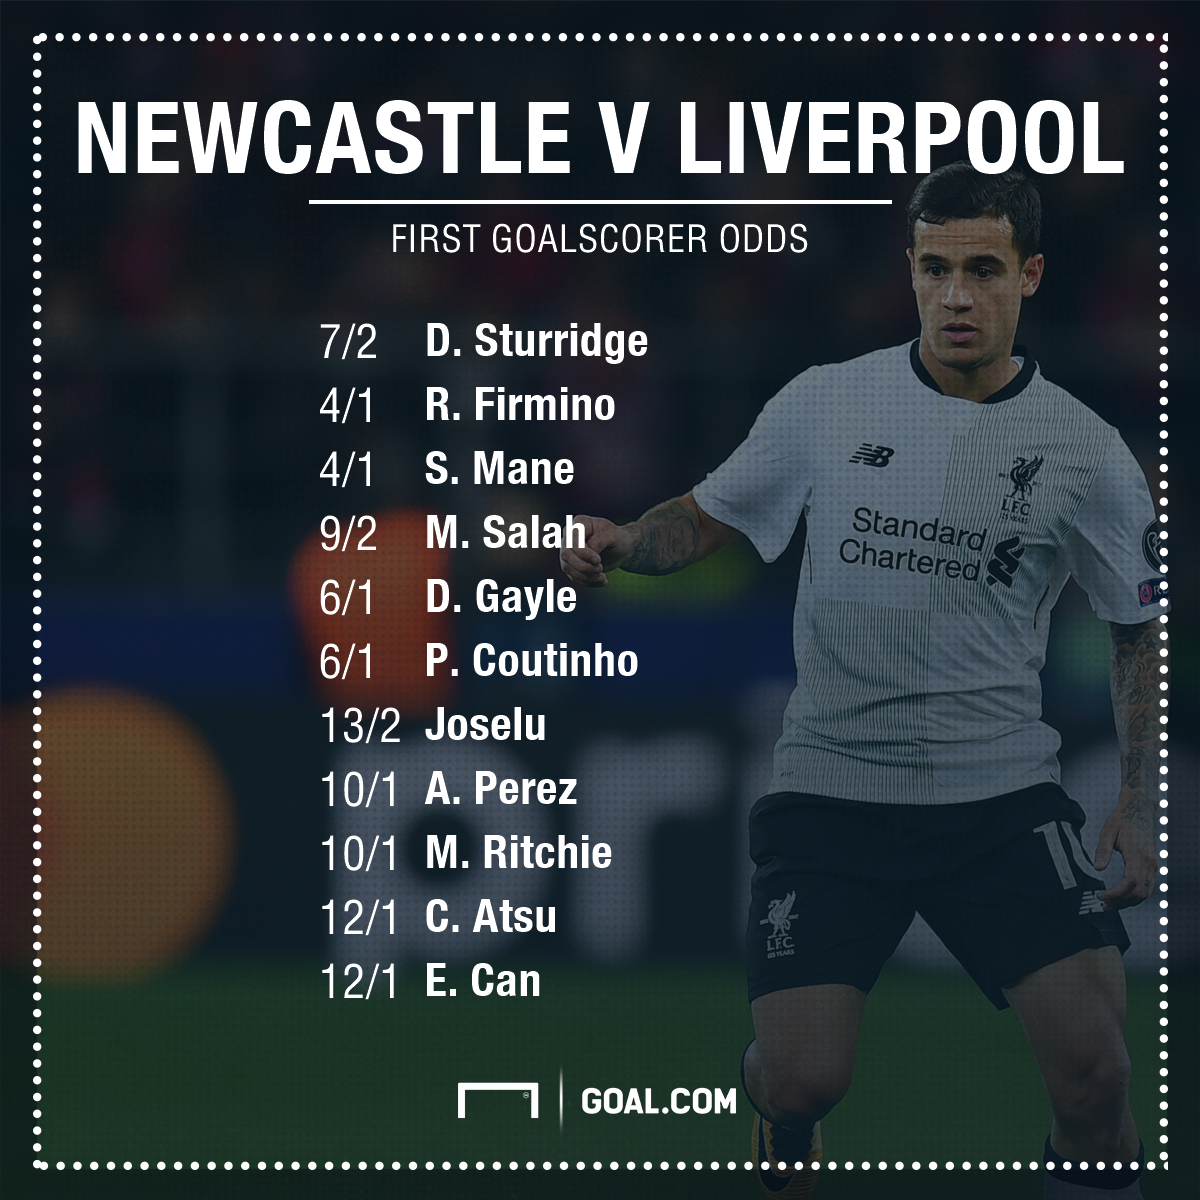 Newcastle v Liverpool betting